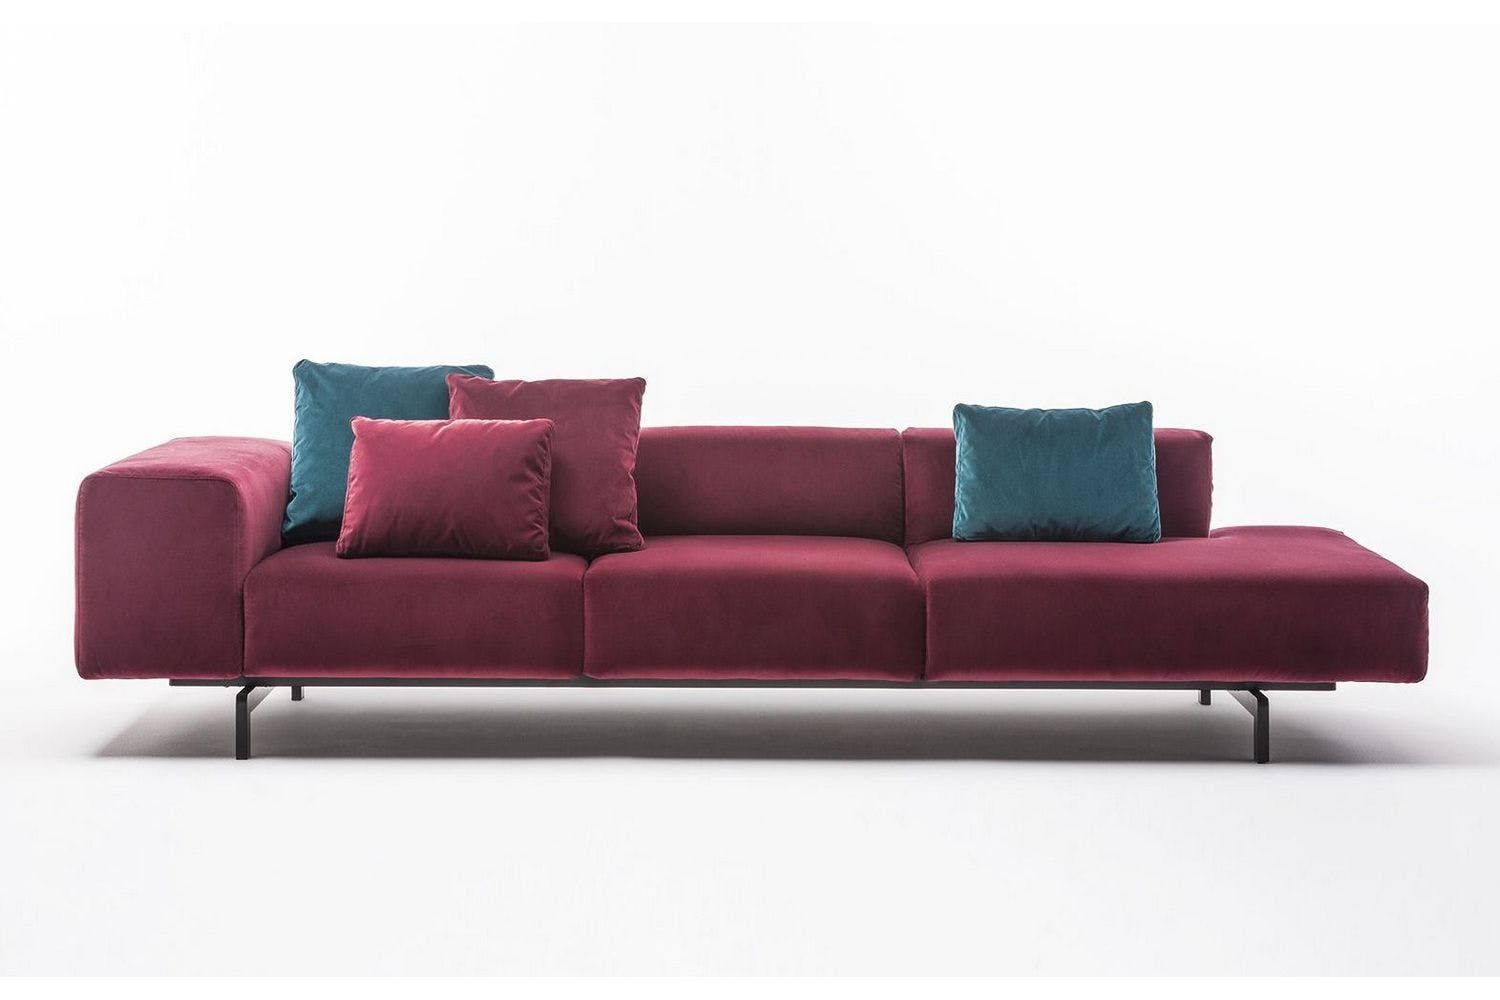 Kartell Sofa Largo Velluto Sofa By Piero Lissoni For Kartell Area Domus